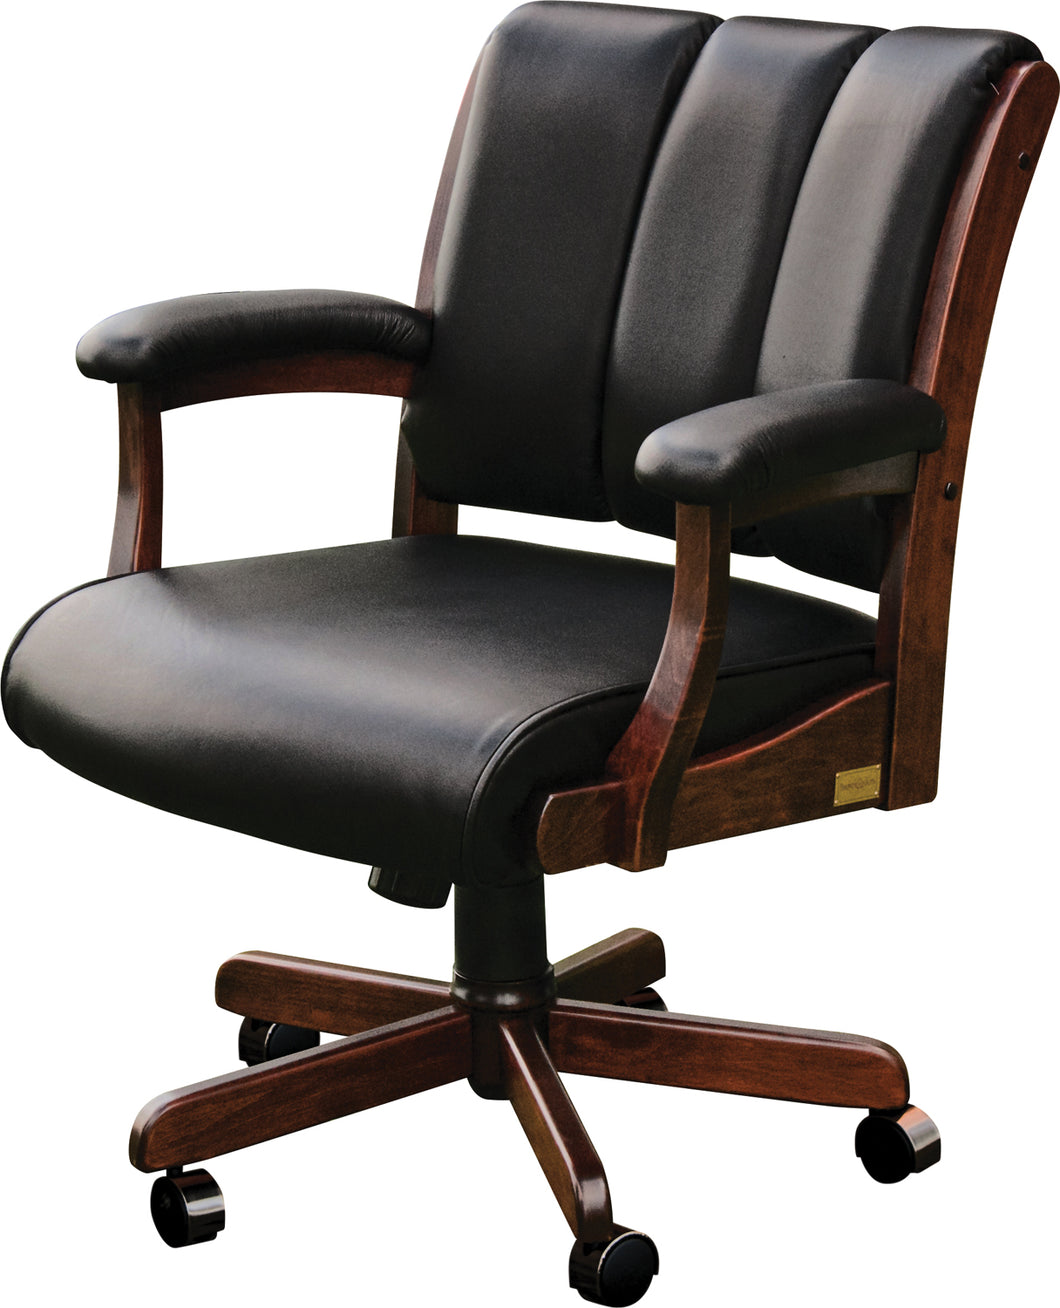 Edelweiss Arm Desk Chair